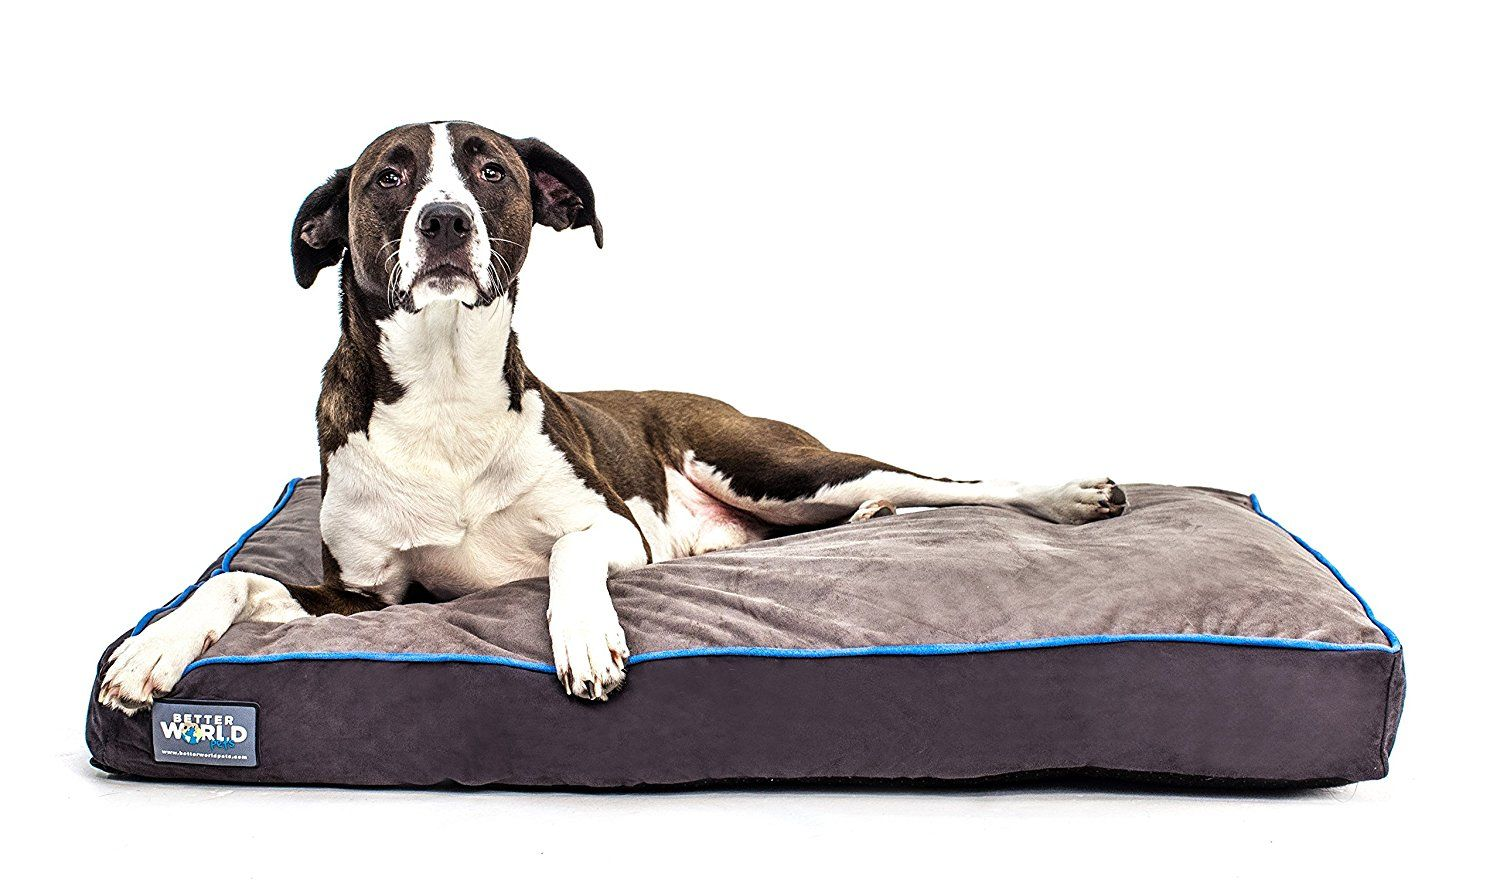 FirstQuality 5' Thick Orthopedic Dog Bed Pure Premium